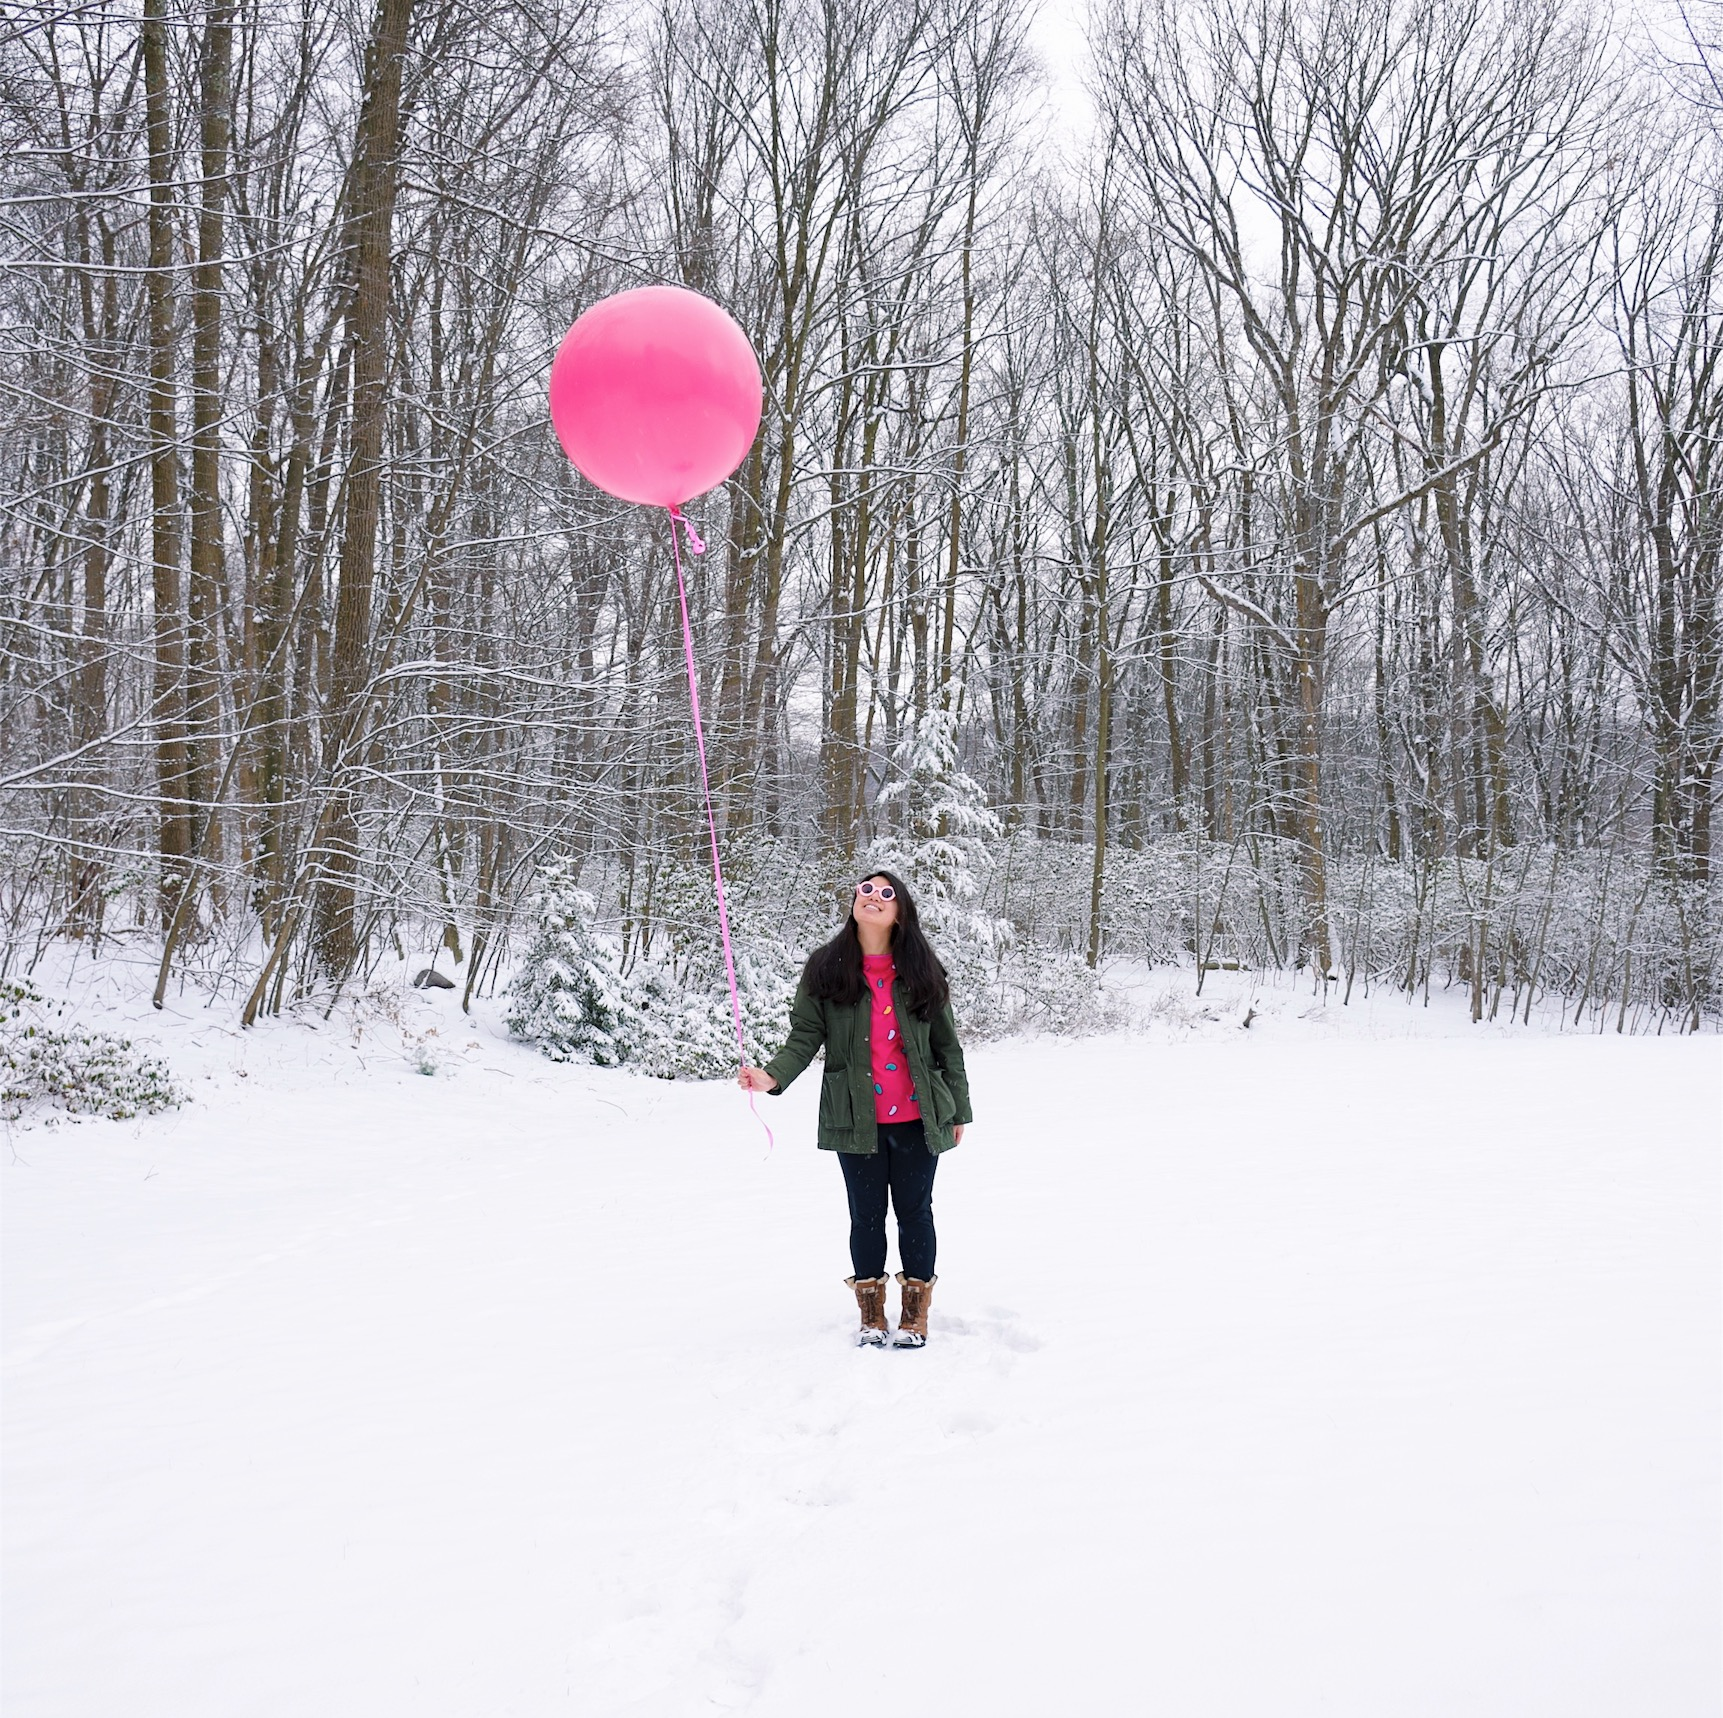 amy_chen_design_2018_highlight_reel_2_birthday_balloon_winter.jpeg